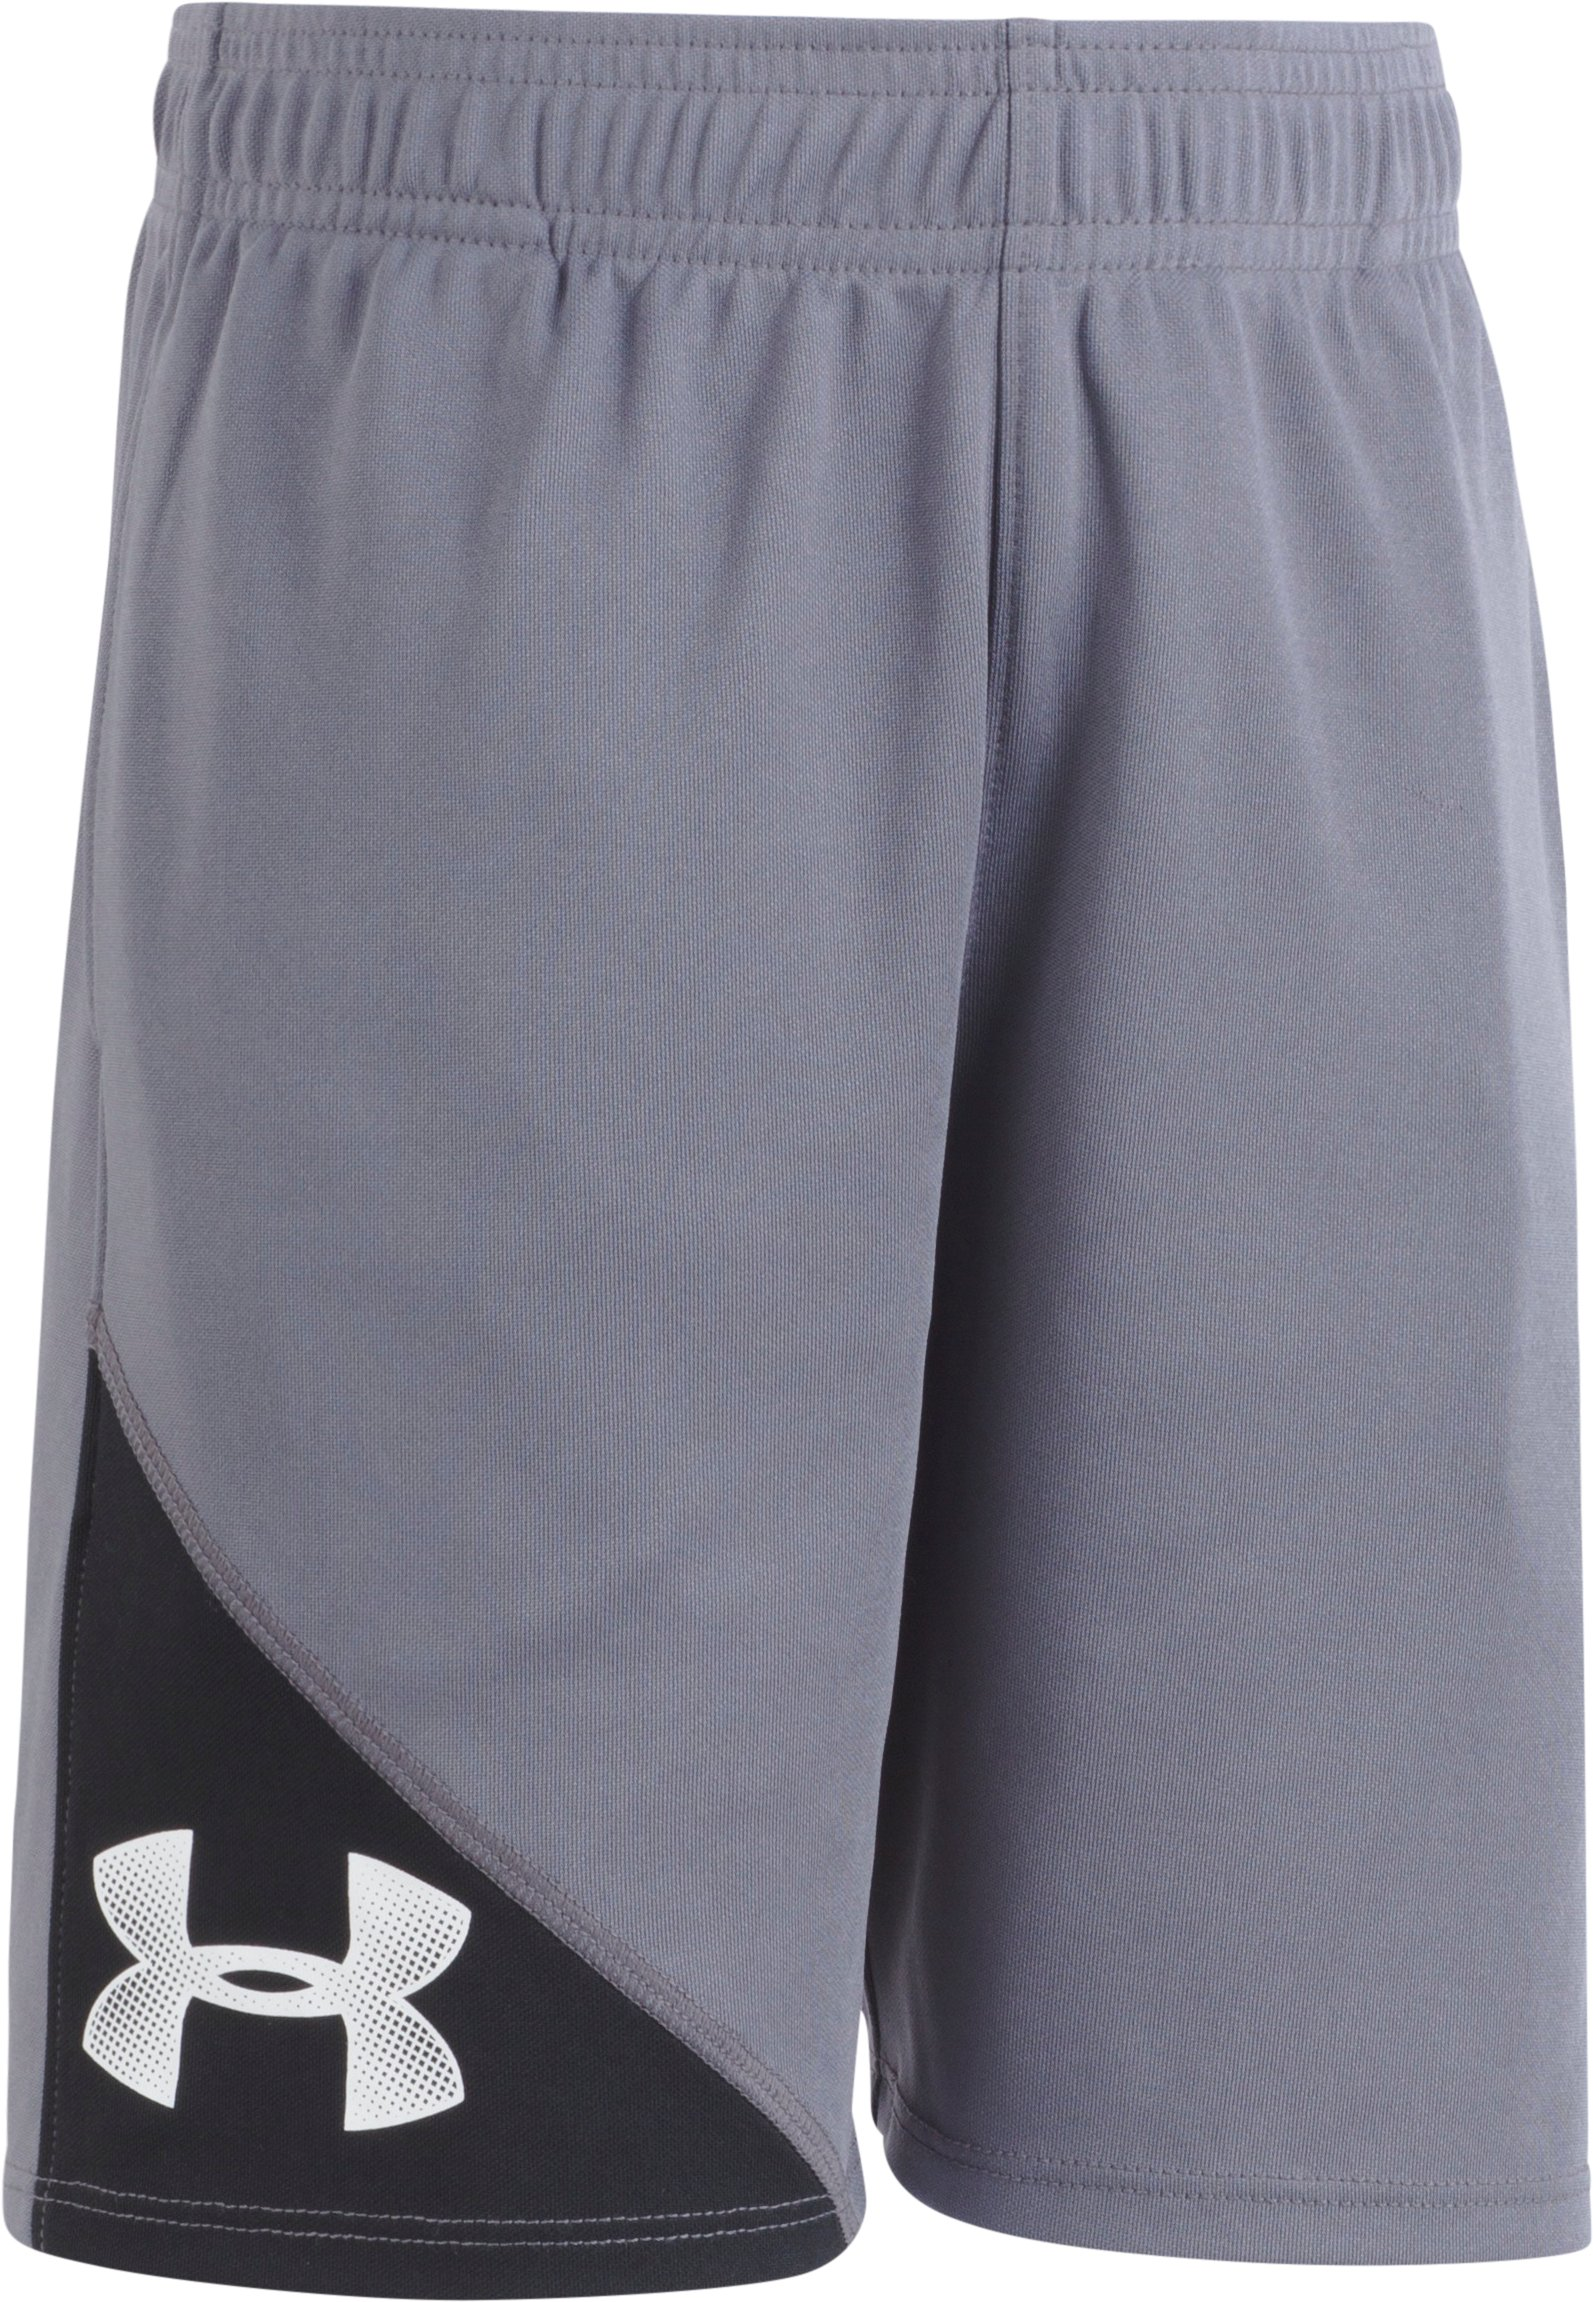 Boys' Pre-School UA Prototype Shorts, Graphite